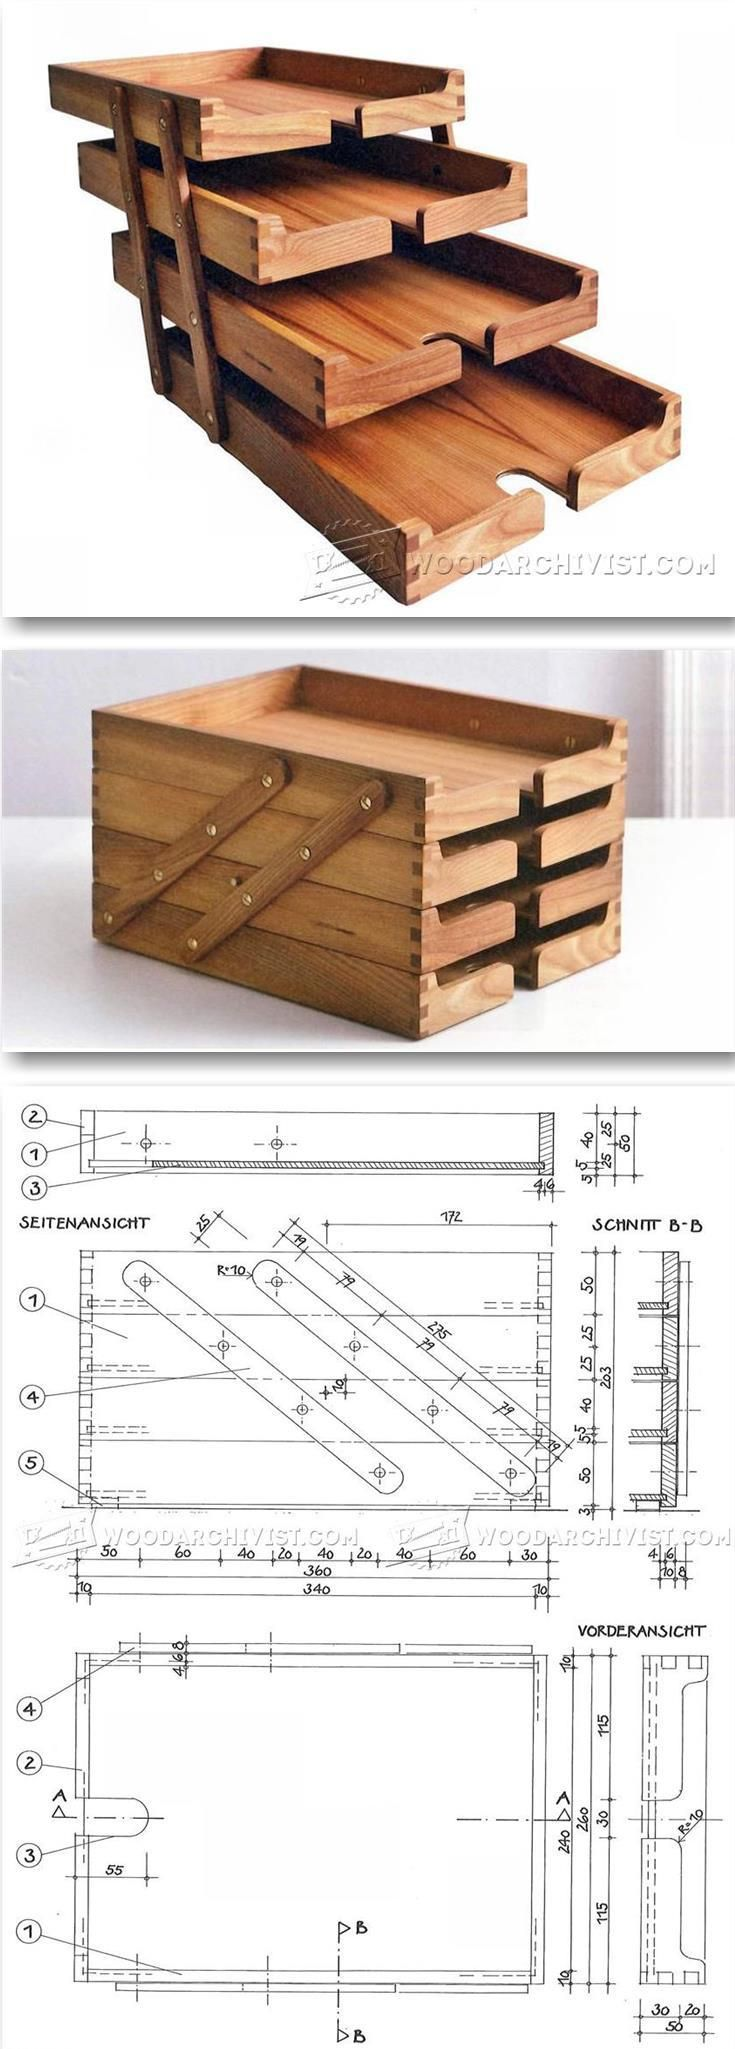 Teds Wood Working - Wooden Desk Tray Plans - Woodworking Plans and Projects | WoodArchivist.com - Get A Lifetime Of Project Ideas & Inspiration